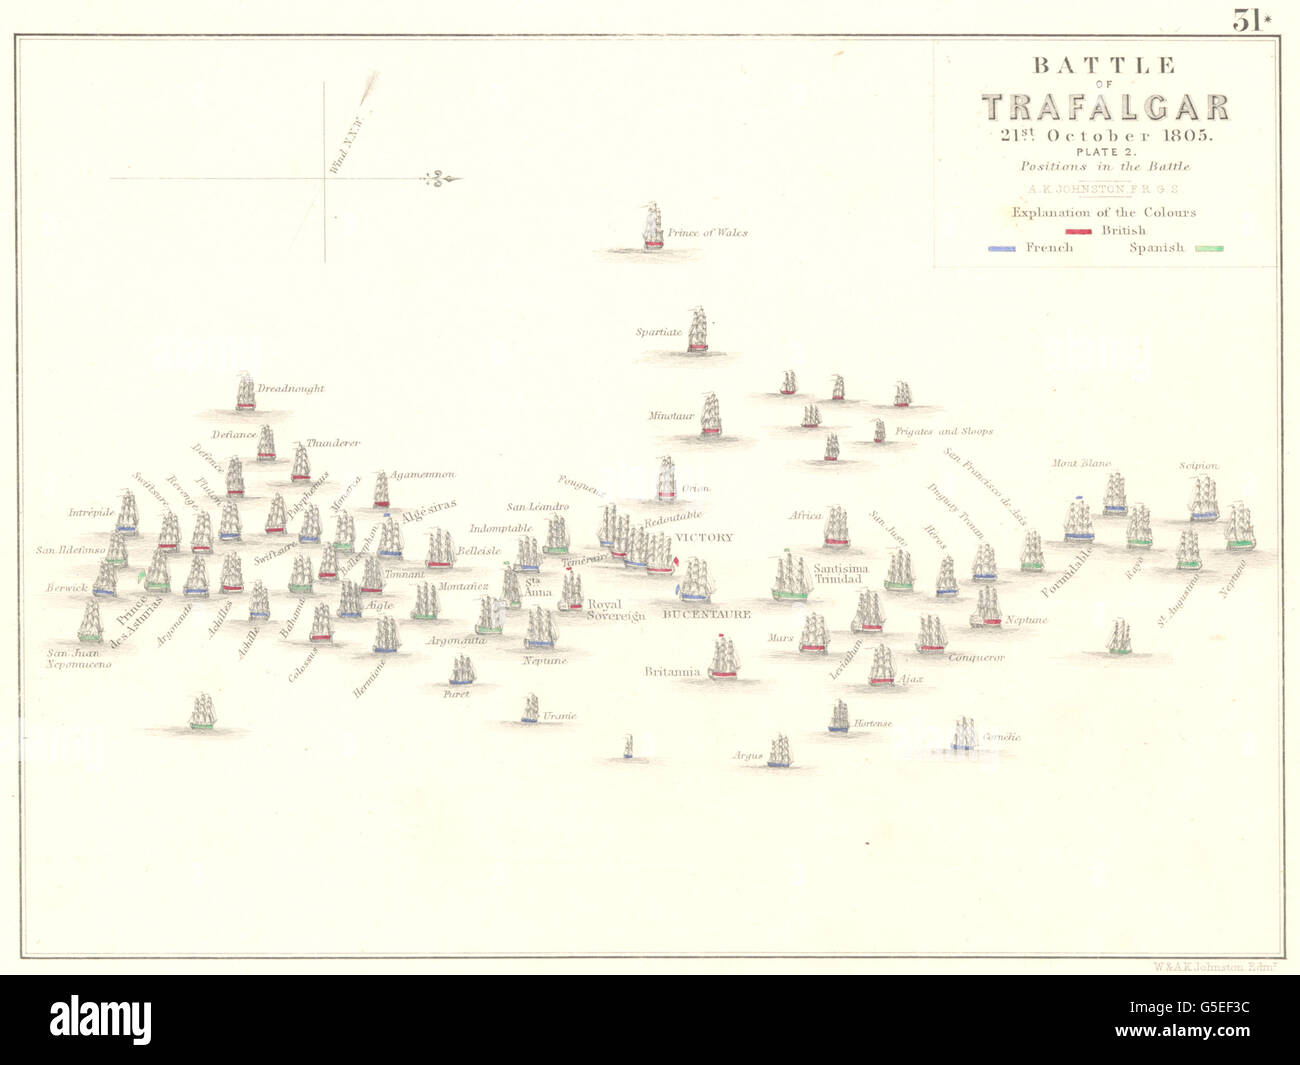 BATTLE OF TRAFALGAR: 21st October 1805 - sheet 2. Spain, 1848 antique map - Stock Image